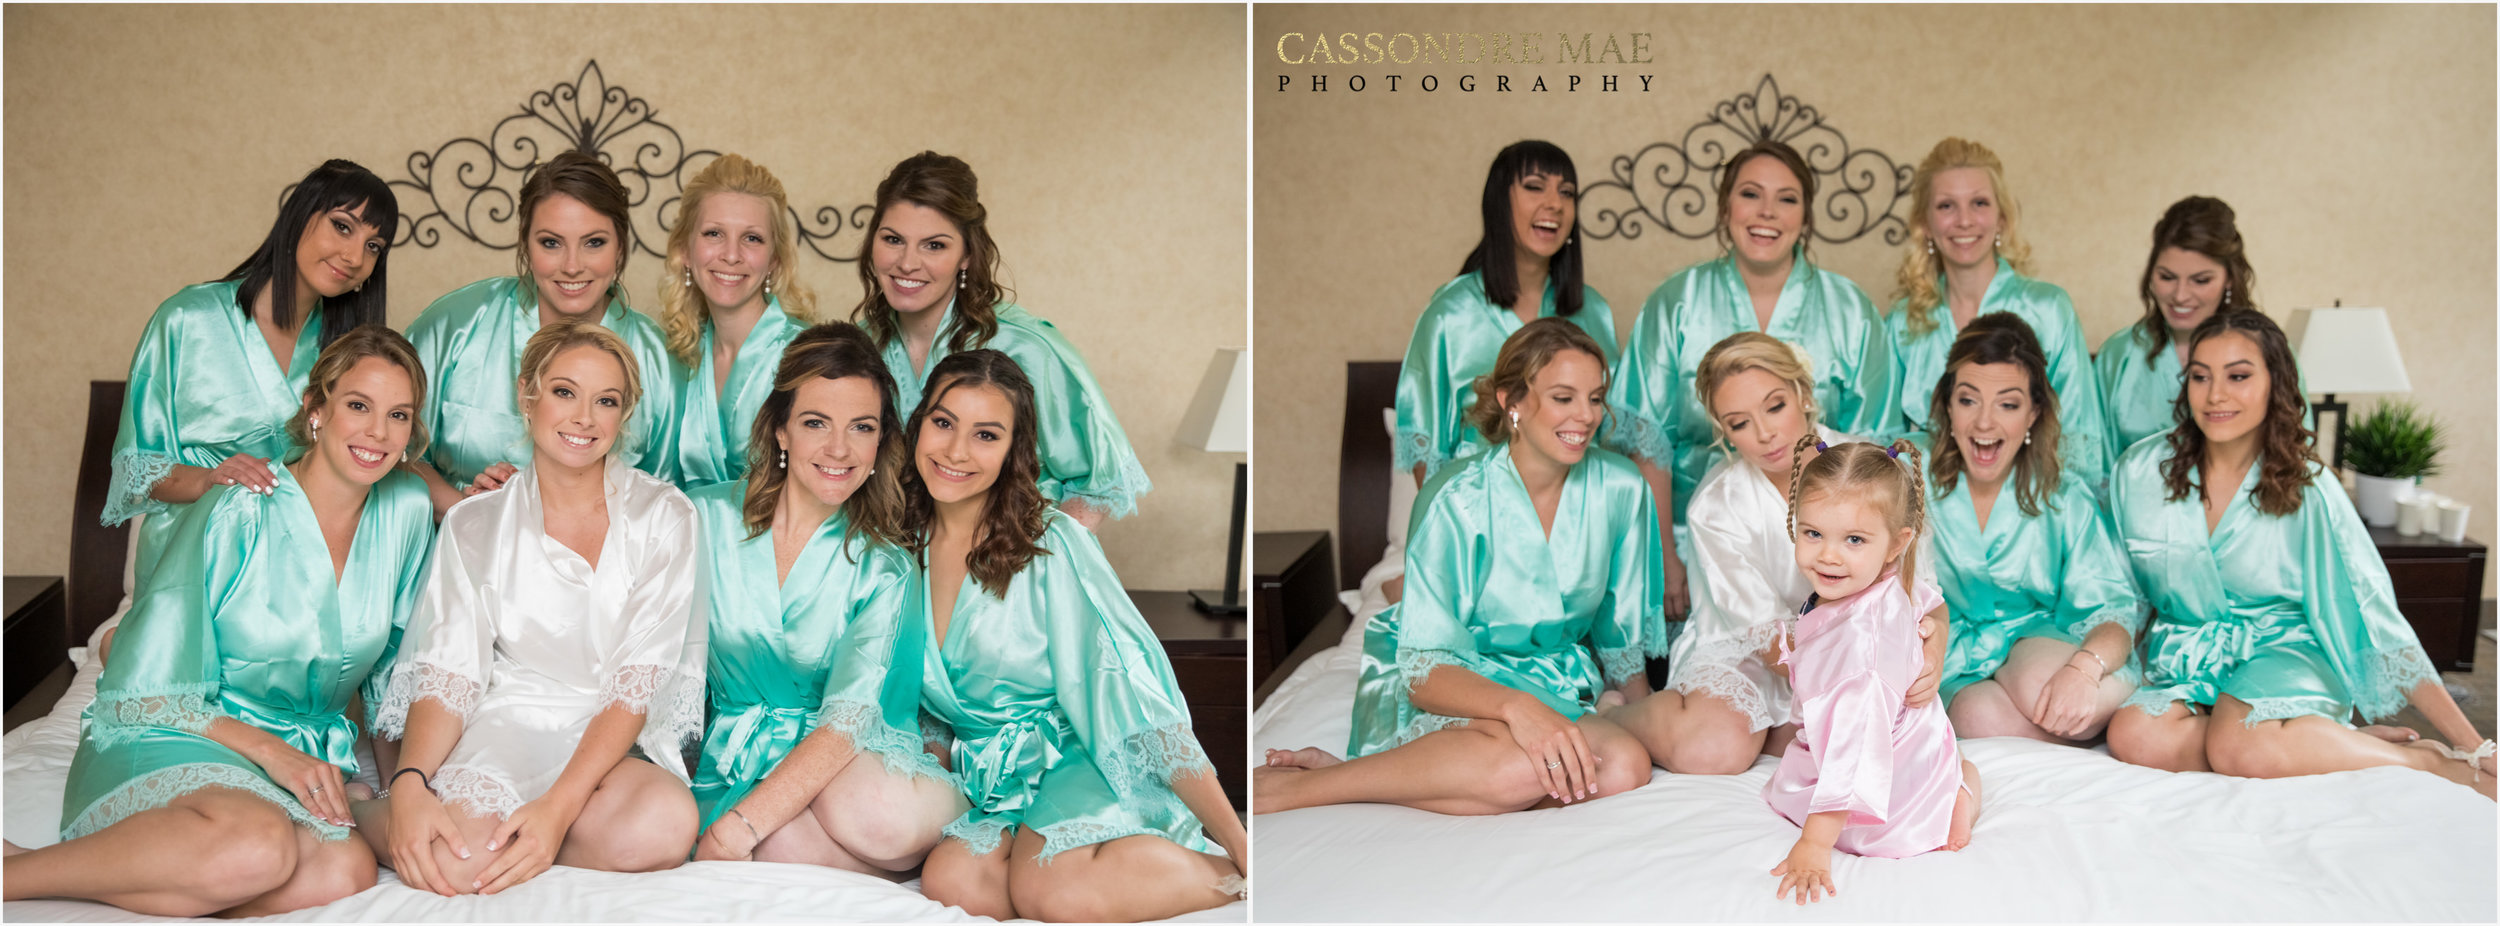 Cassondre Mae Photography Honors Haven Resort Wedding Hudson Valley NY